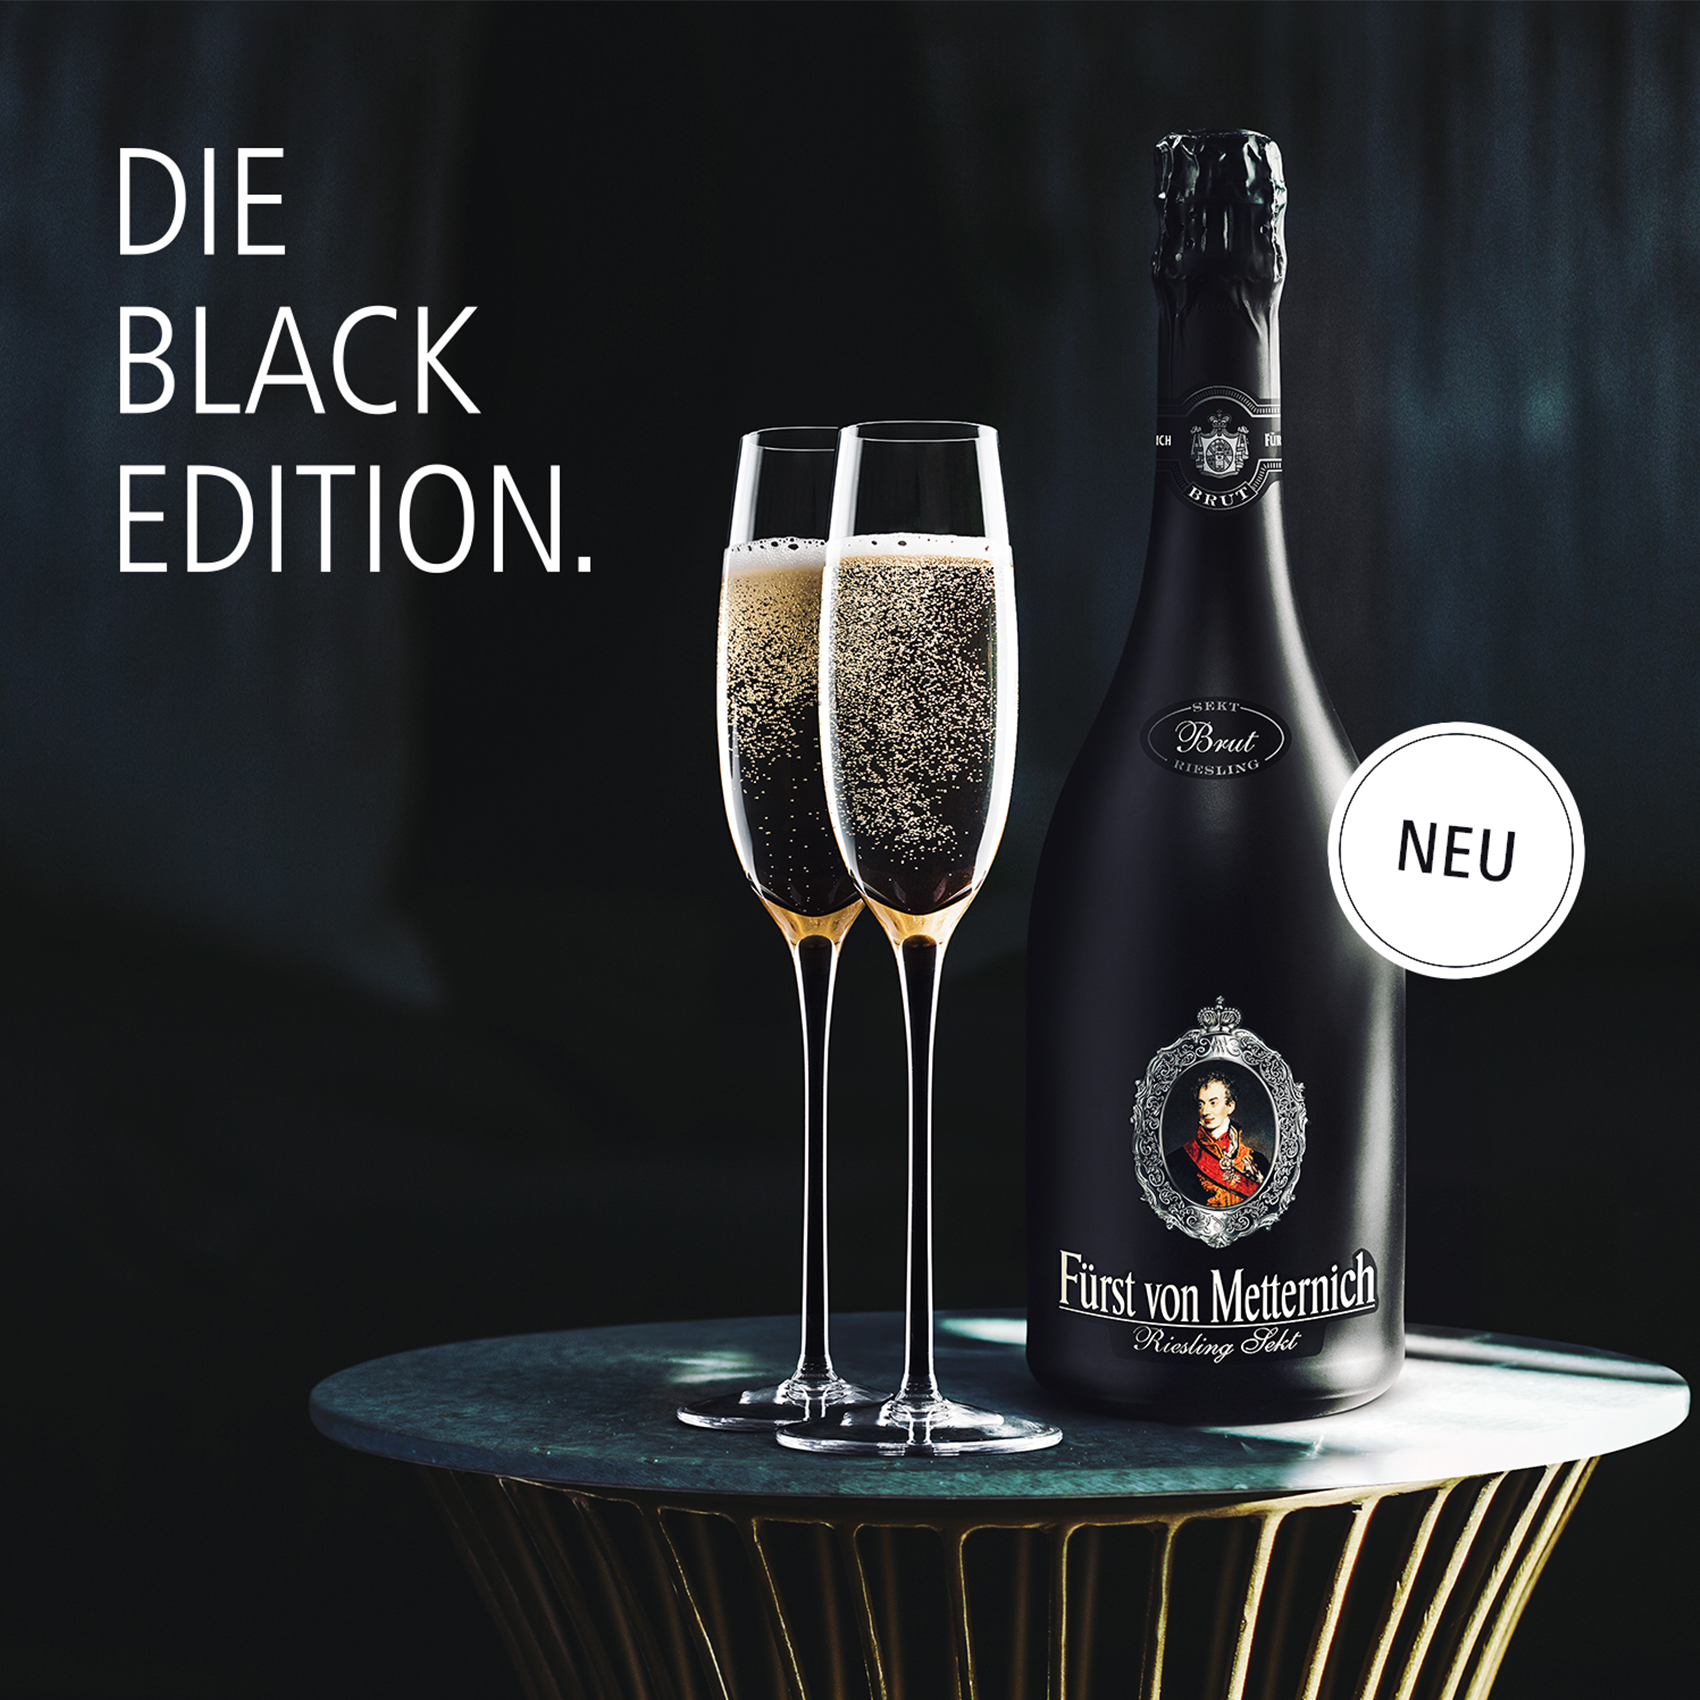 Die Black Edition. — kraftundadel